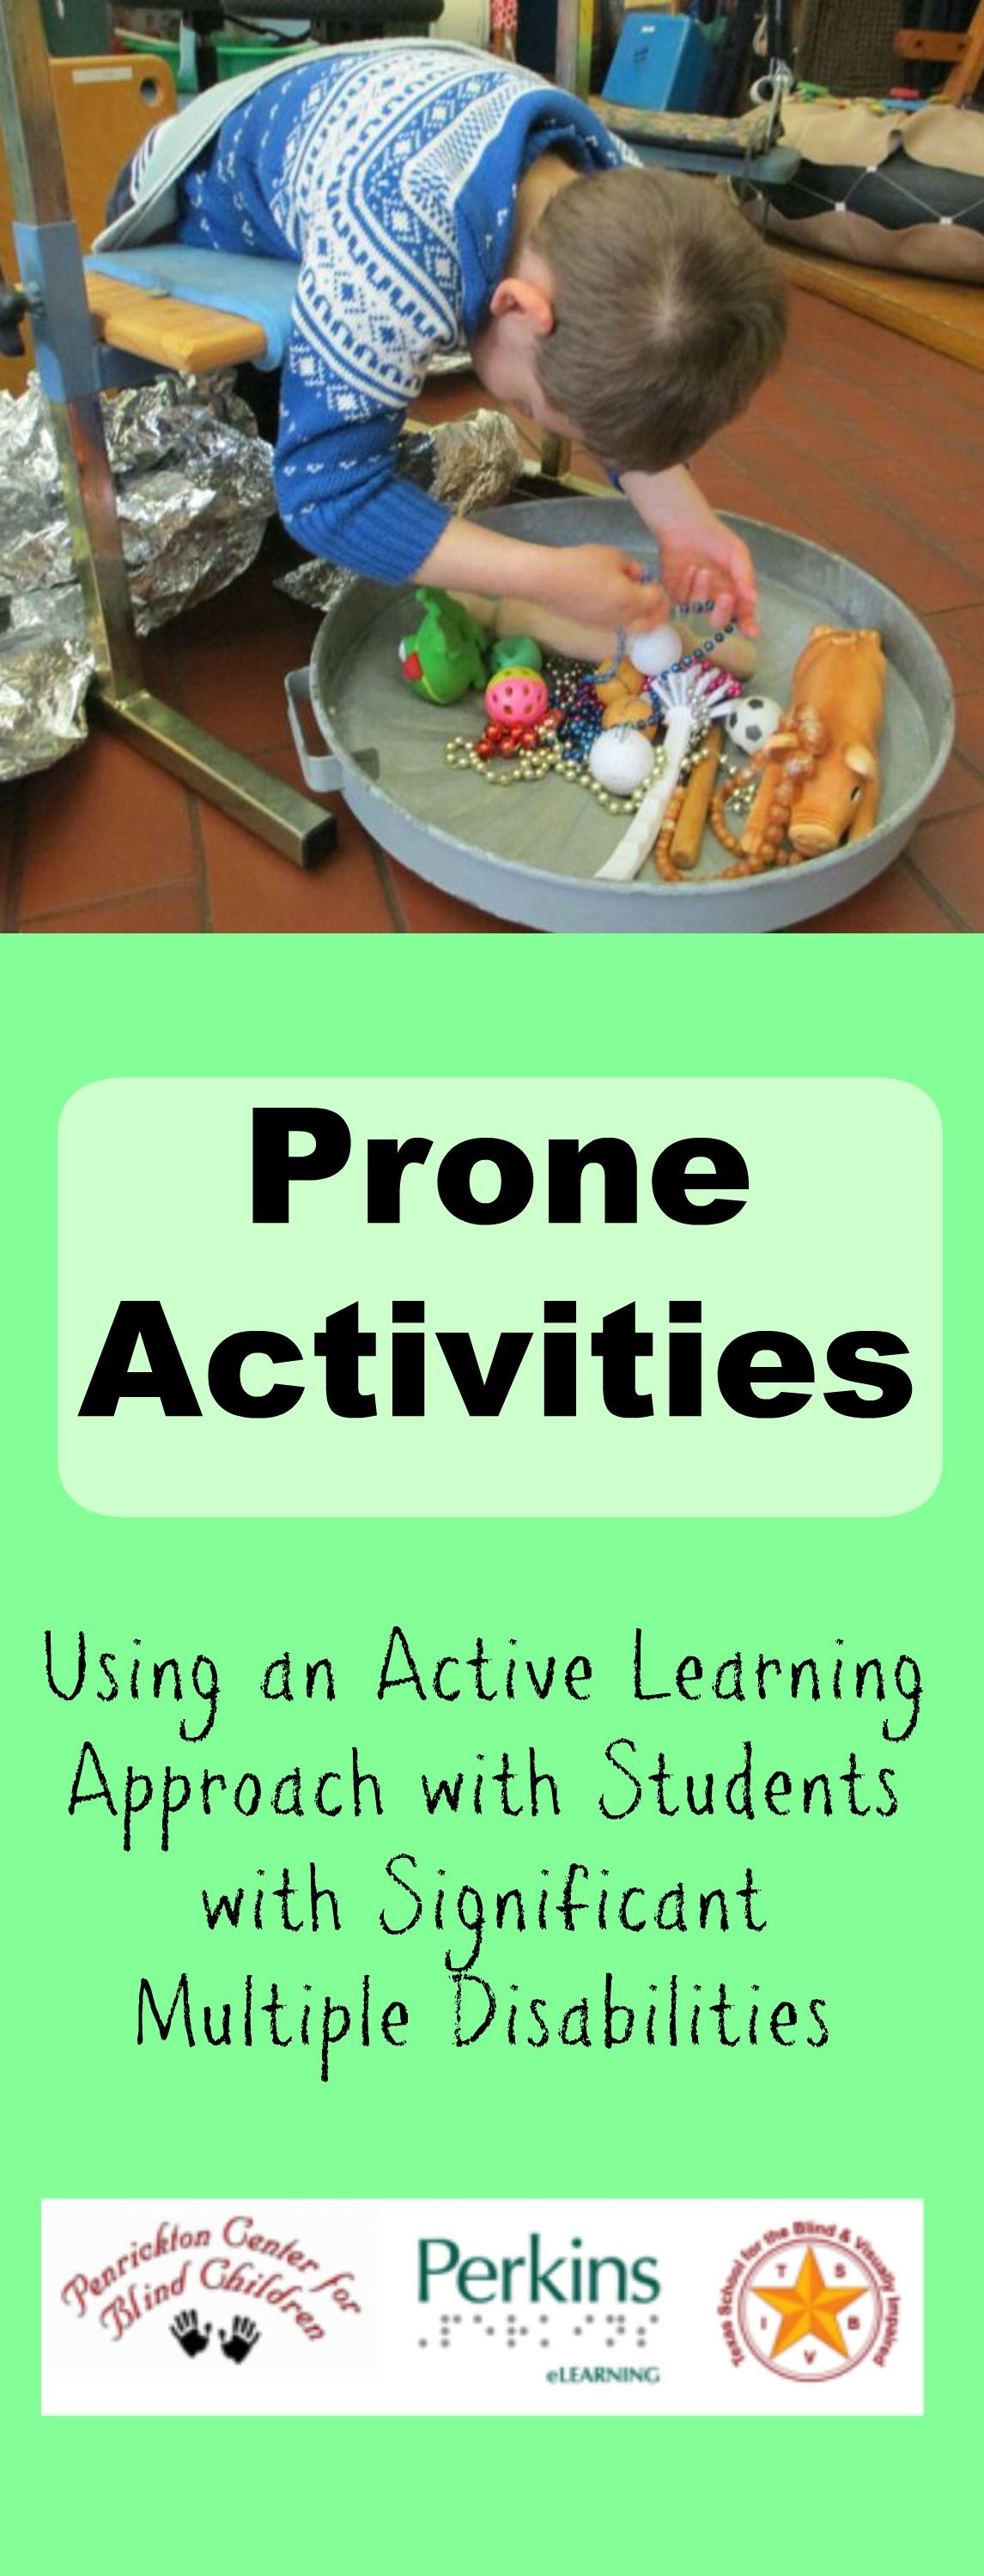 Great Ideas Of Prone Activities Using An Active Learning Approach With Students With Significant